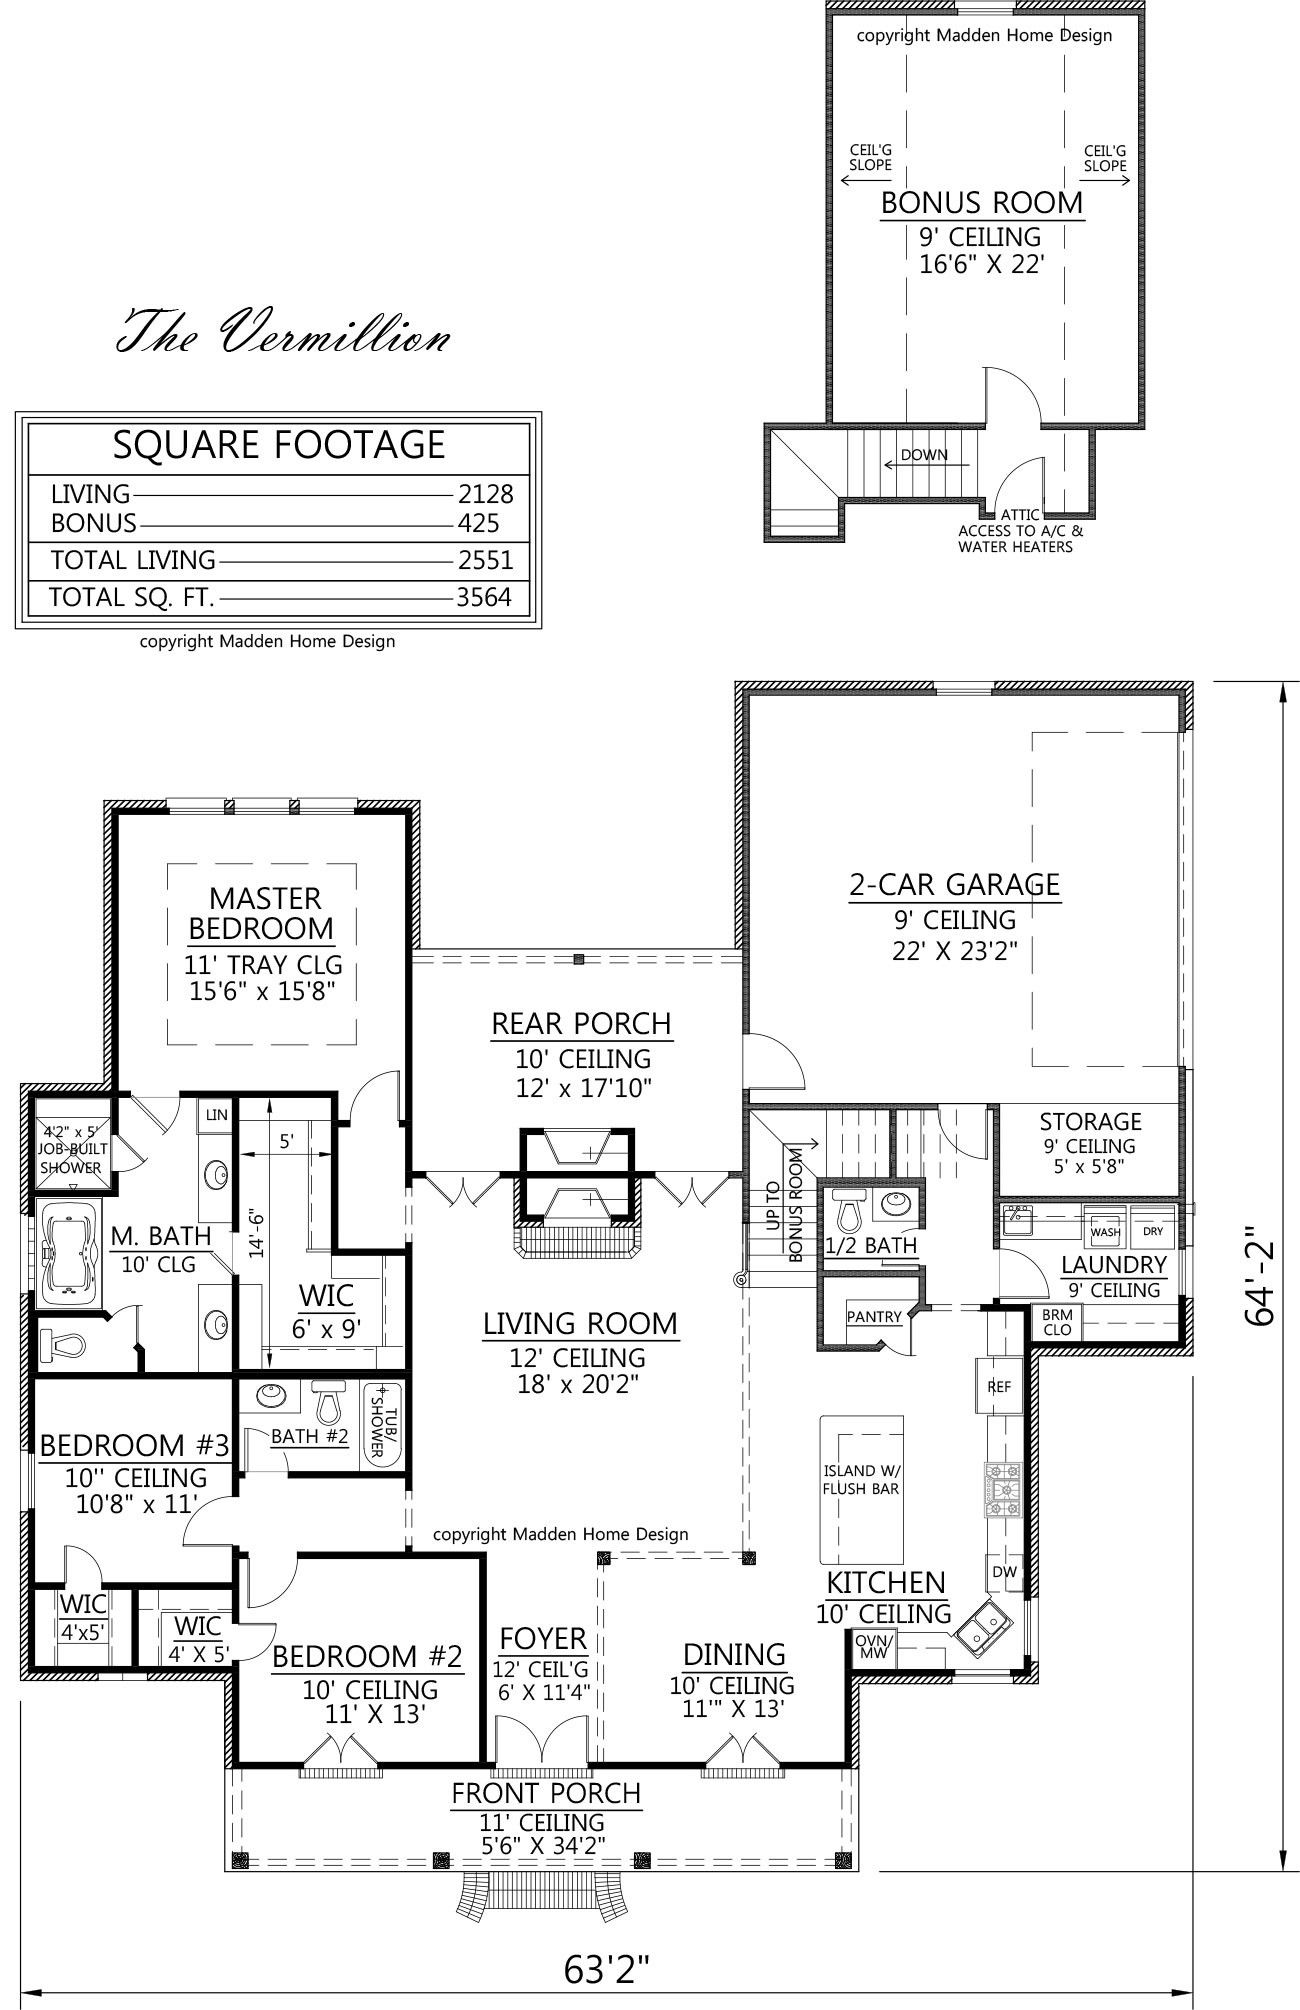 Acadian style house plan, The Vermillion, Madden Home Design, 4 ...